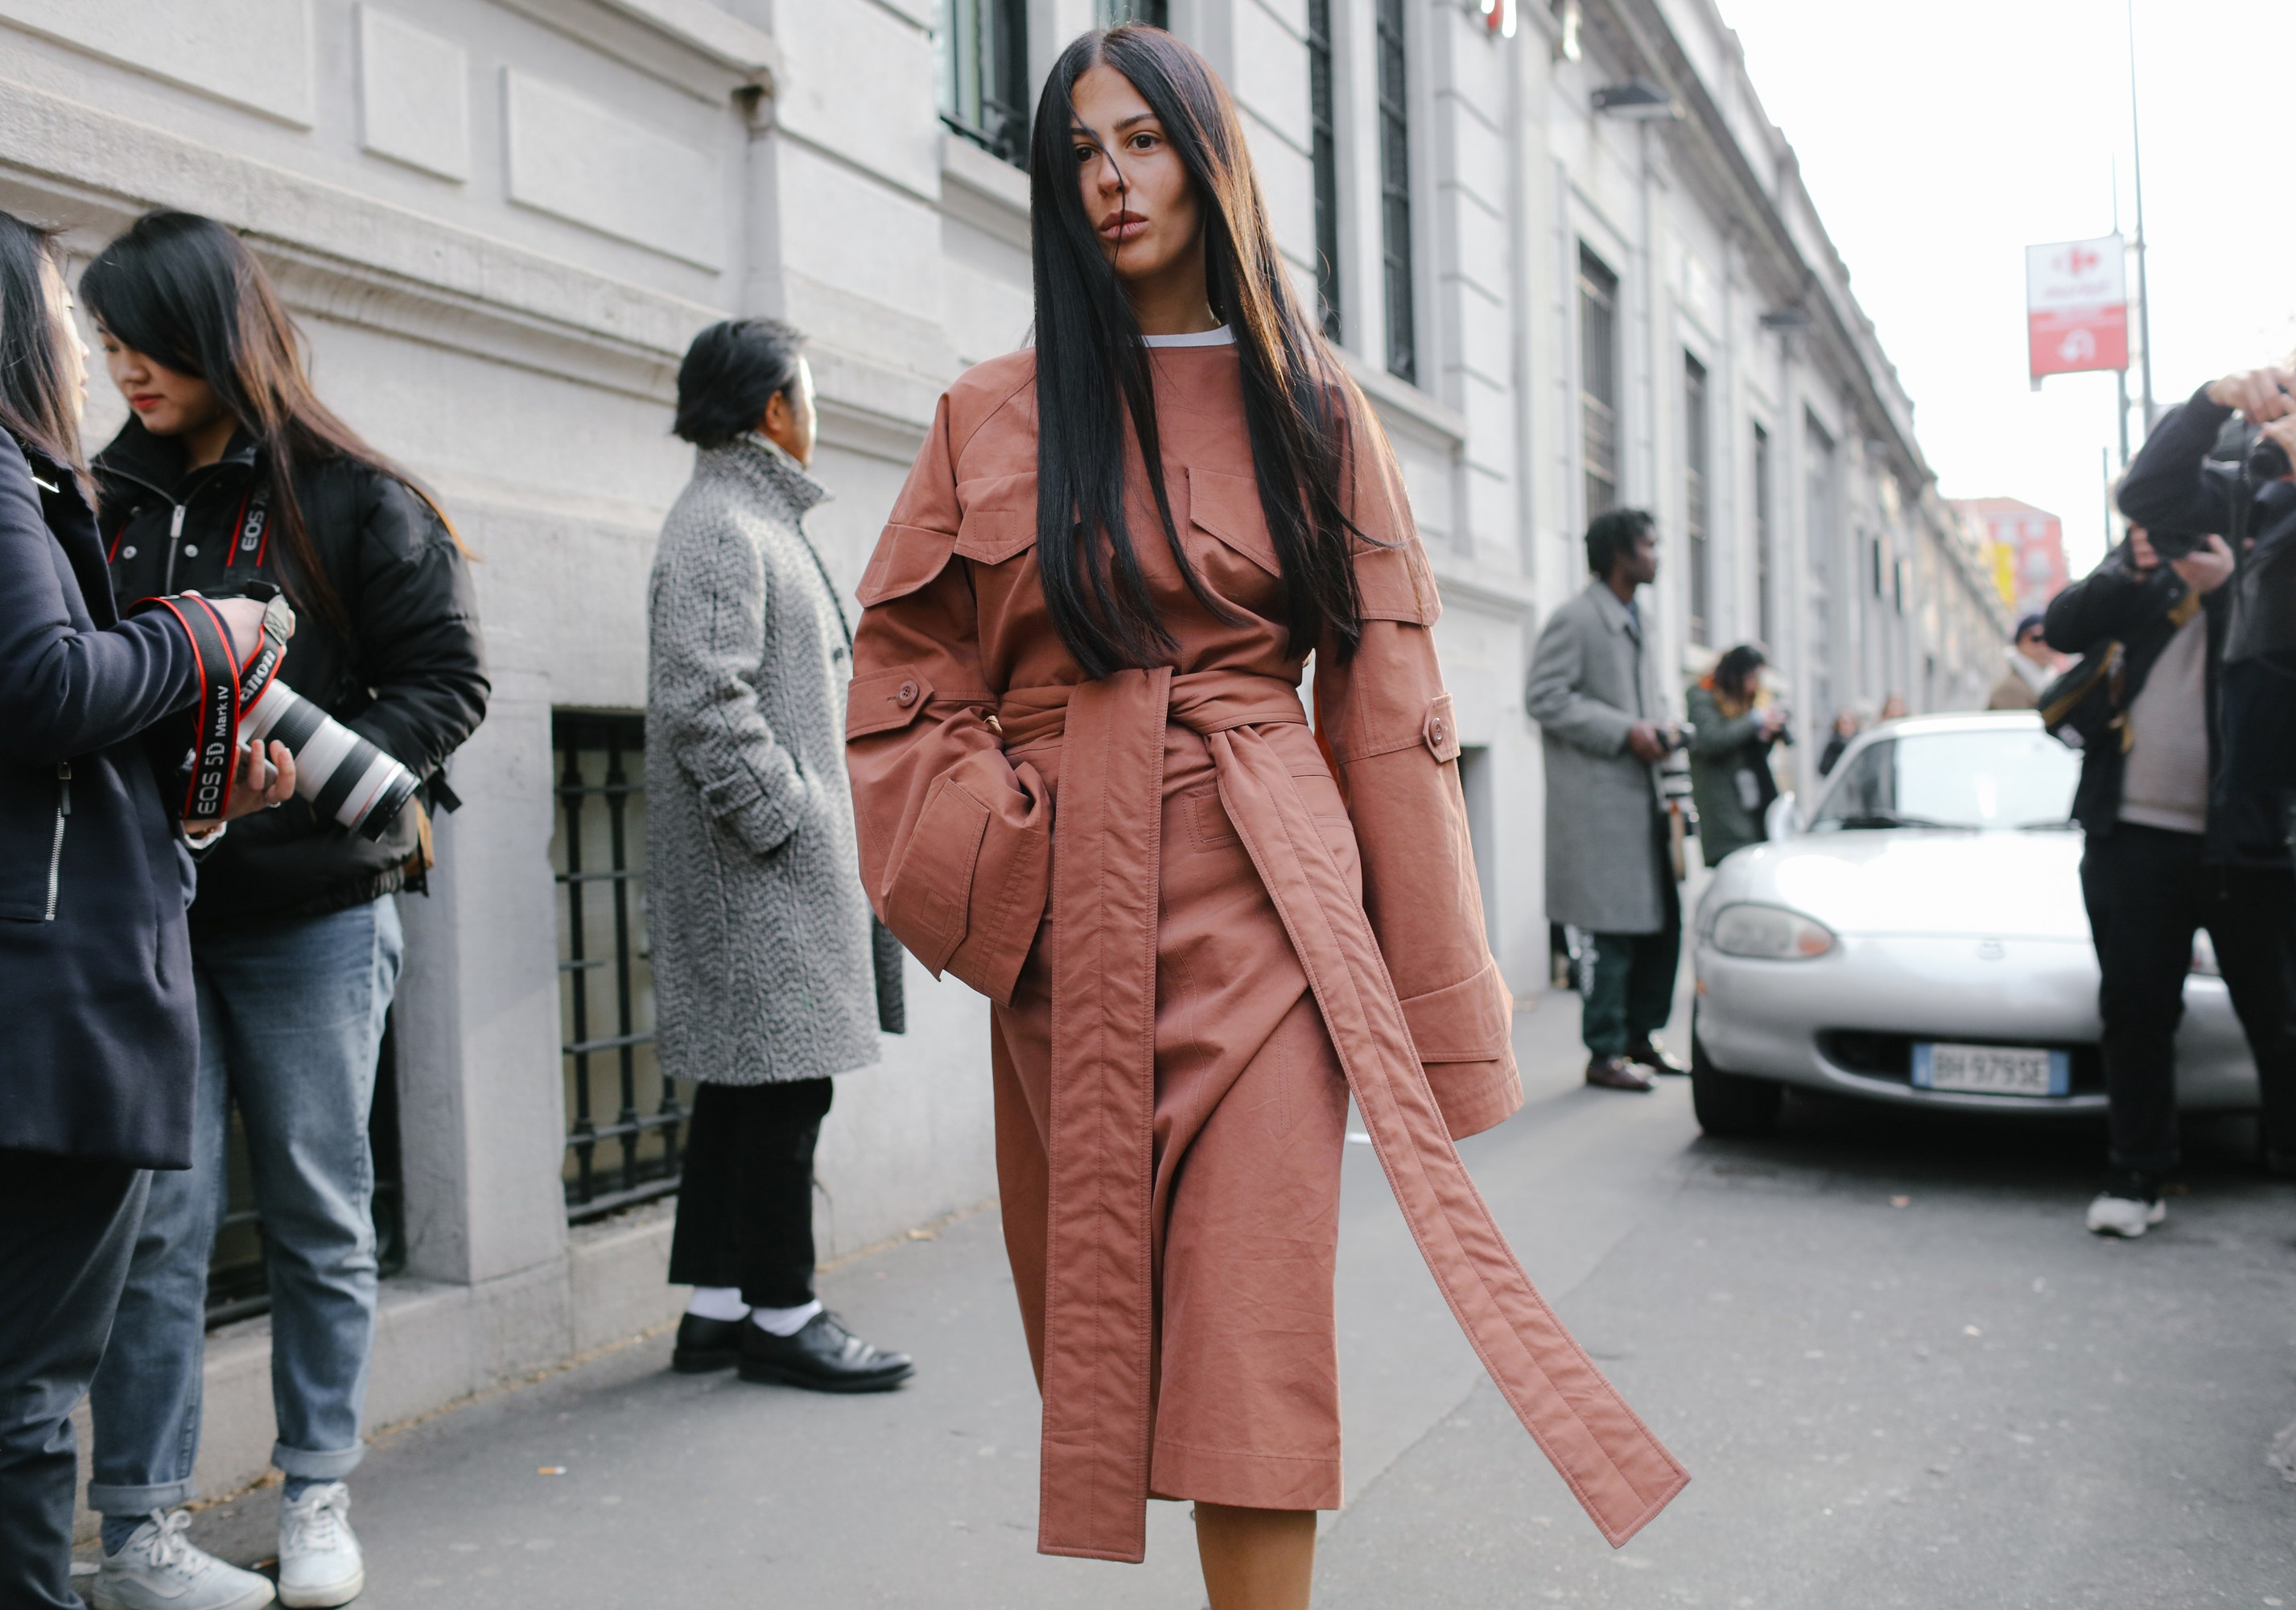 global street style fashion, news, photos and videos - vogue MHYYSFU